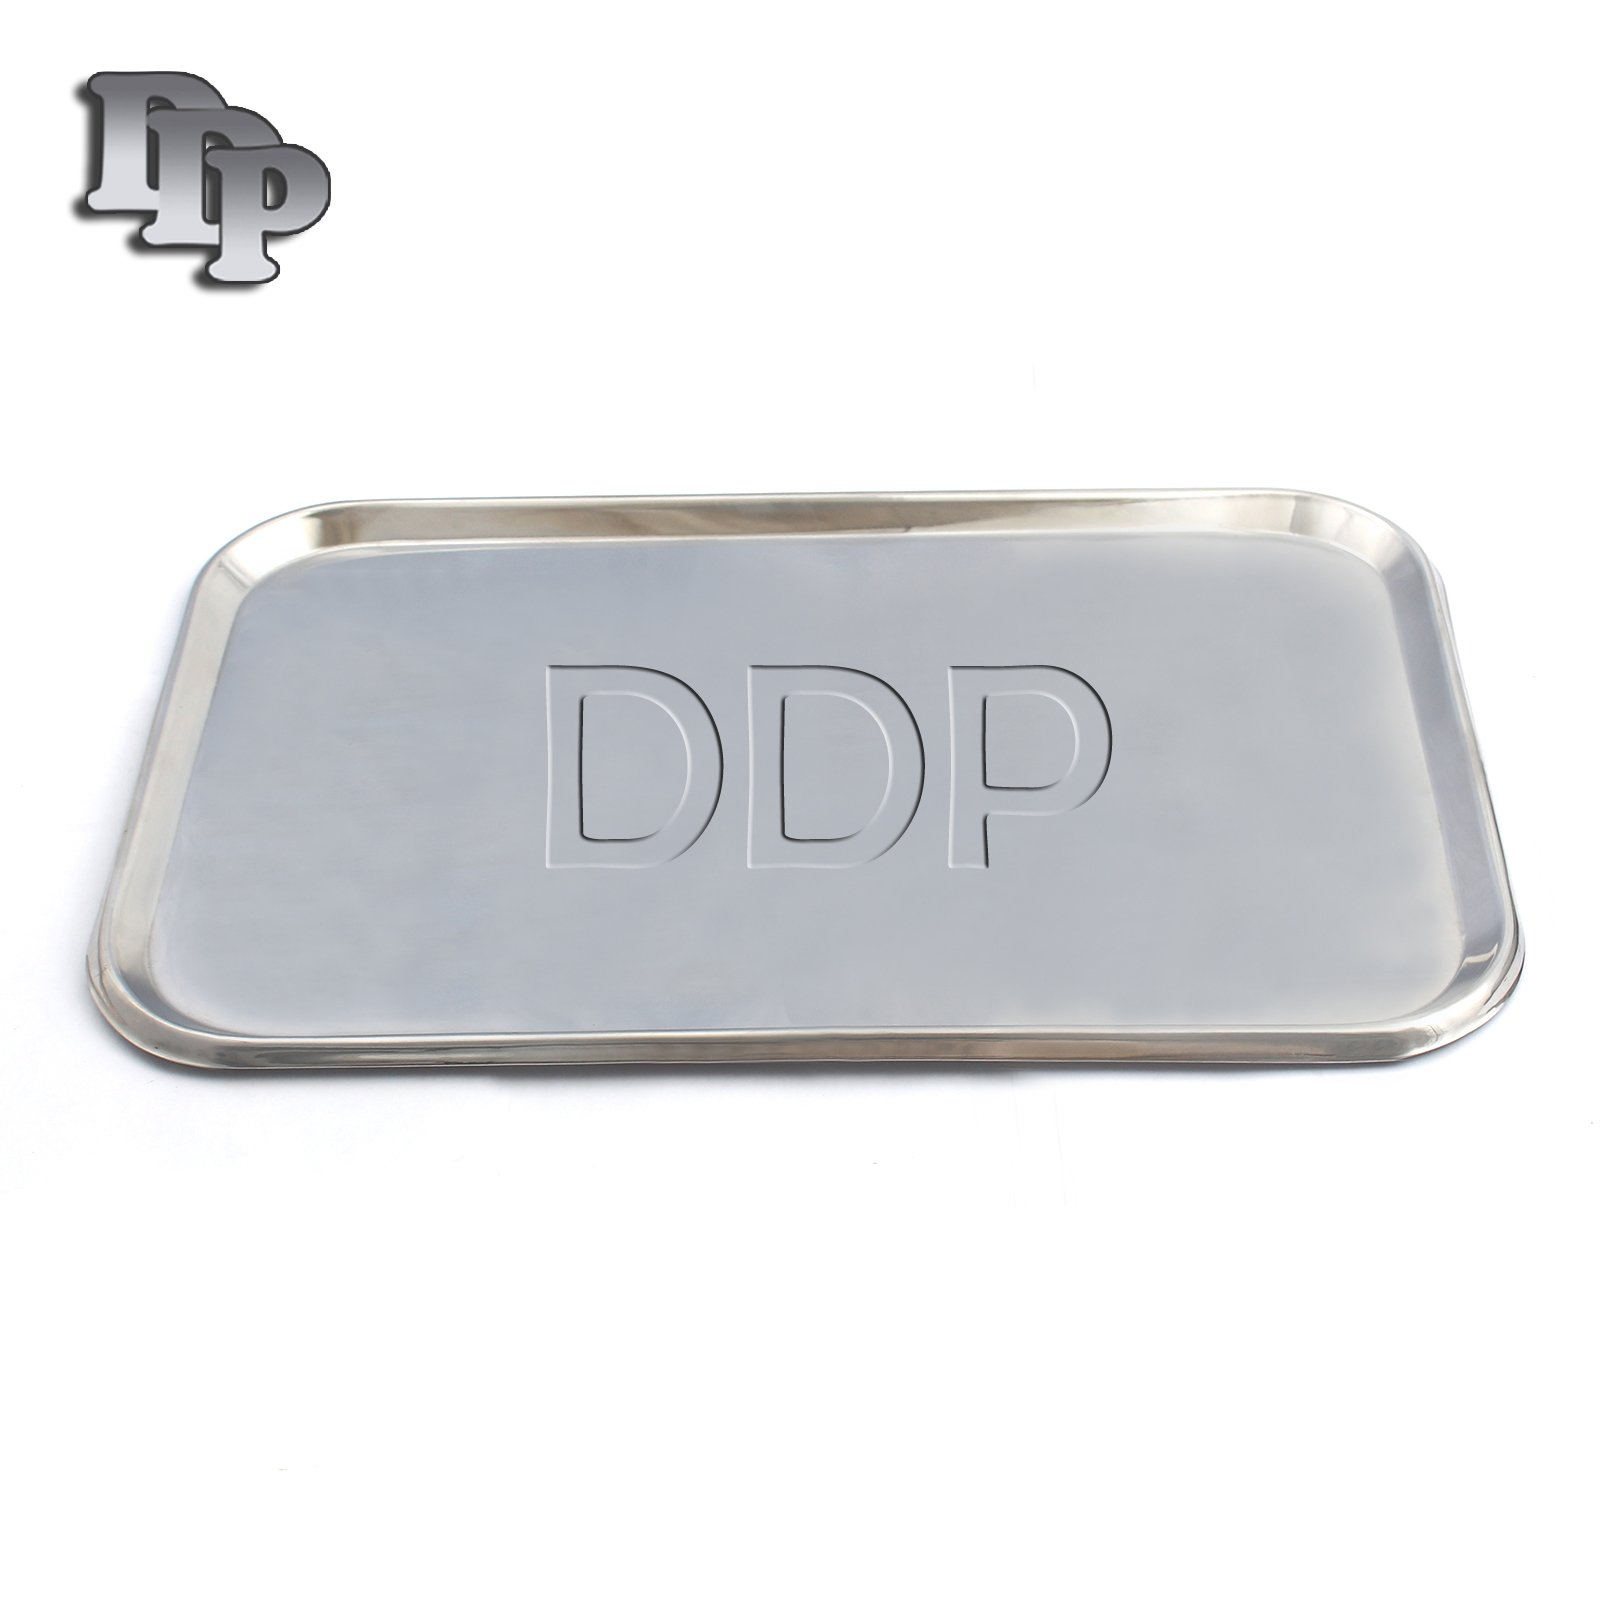 DDP FLAT TYPE INSTRUMENT TRAY, STAINLESS STEEL, 19'' X 12-1/2'' X 5/8''